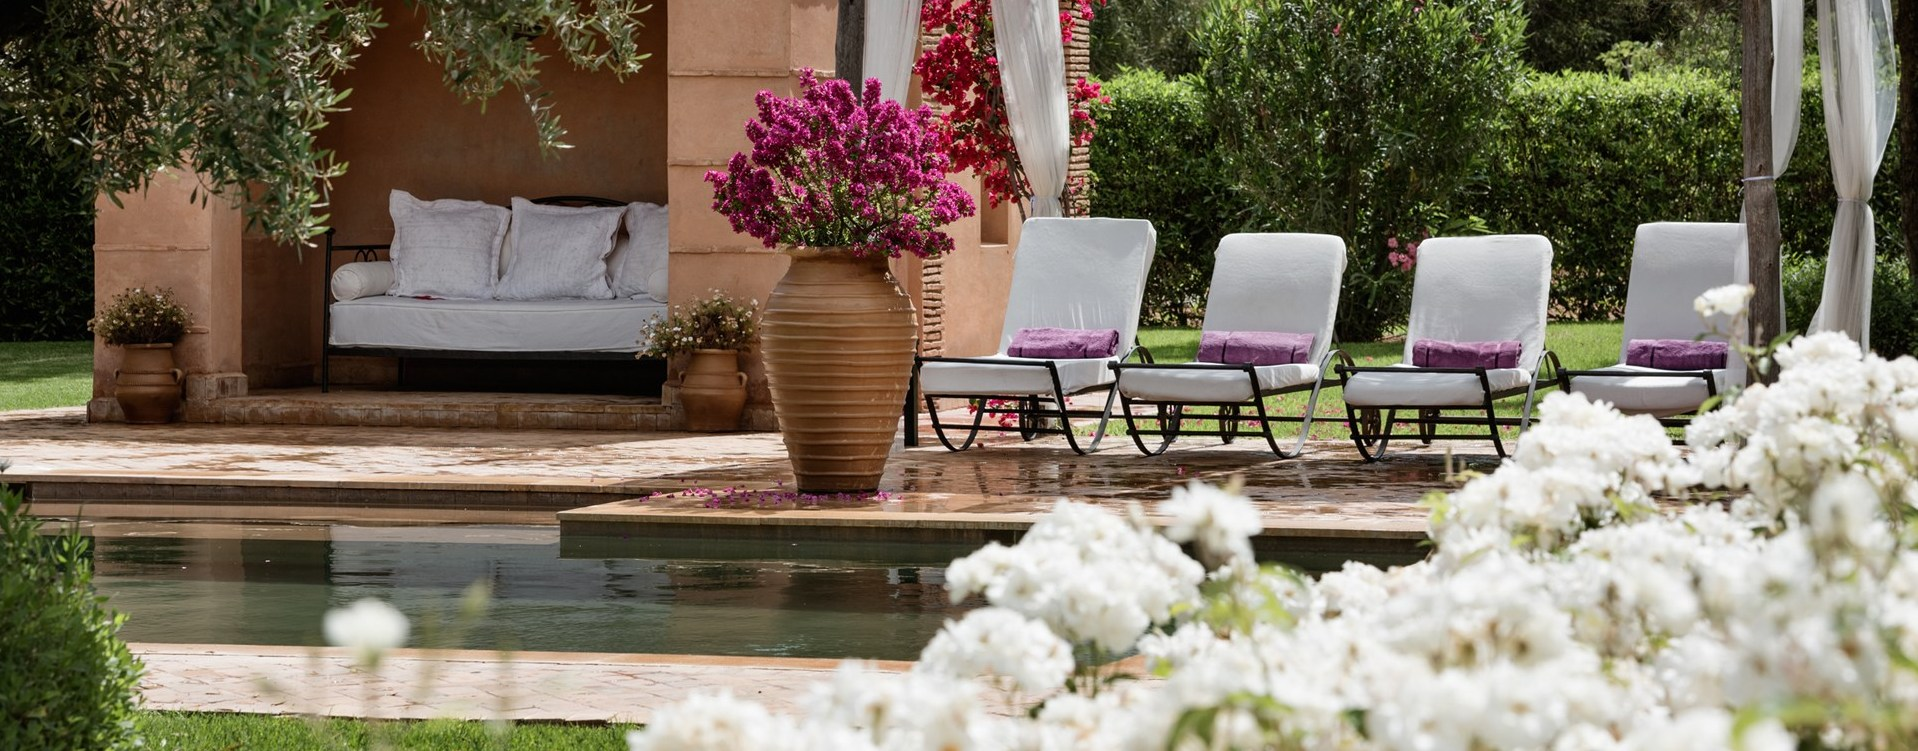 luxury-4-bed-pool-villa-marrakech